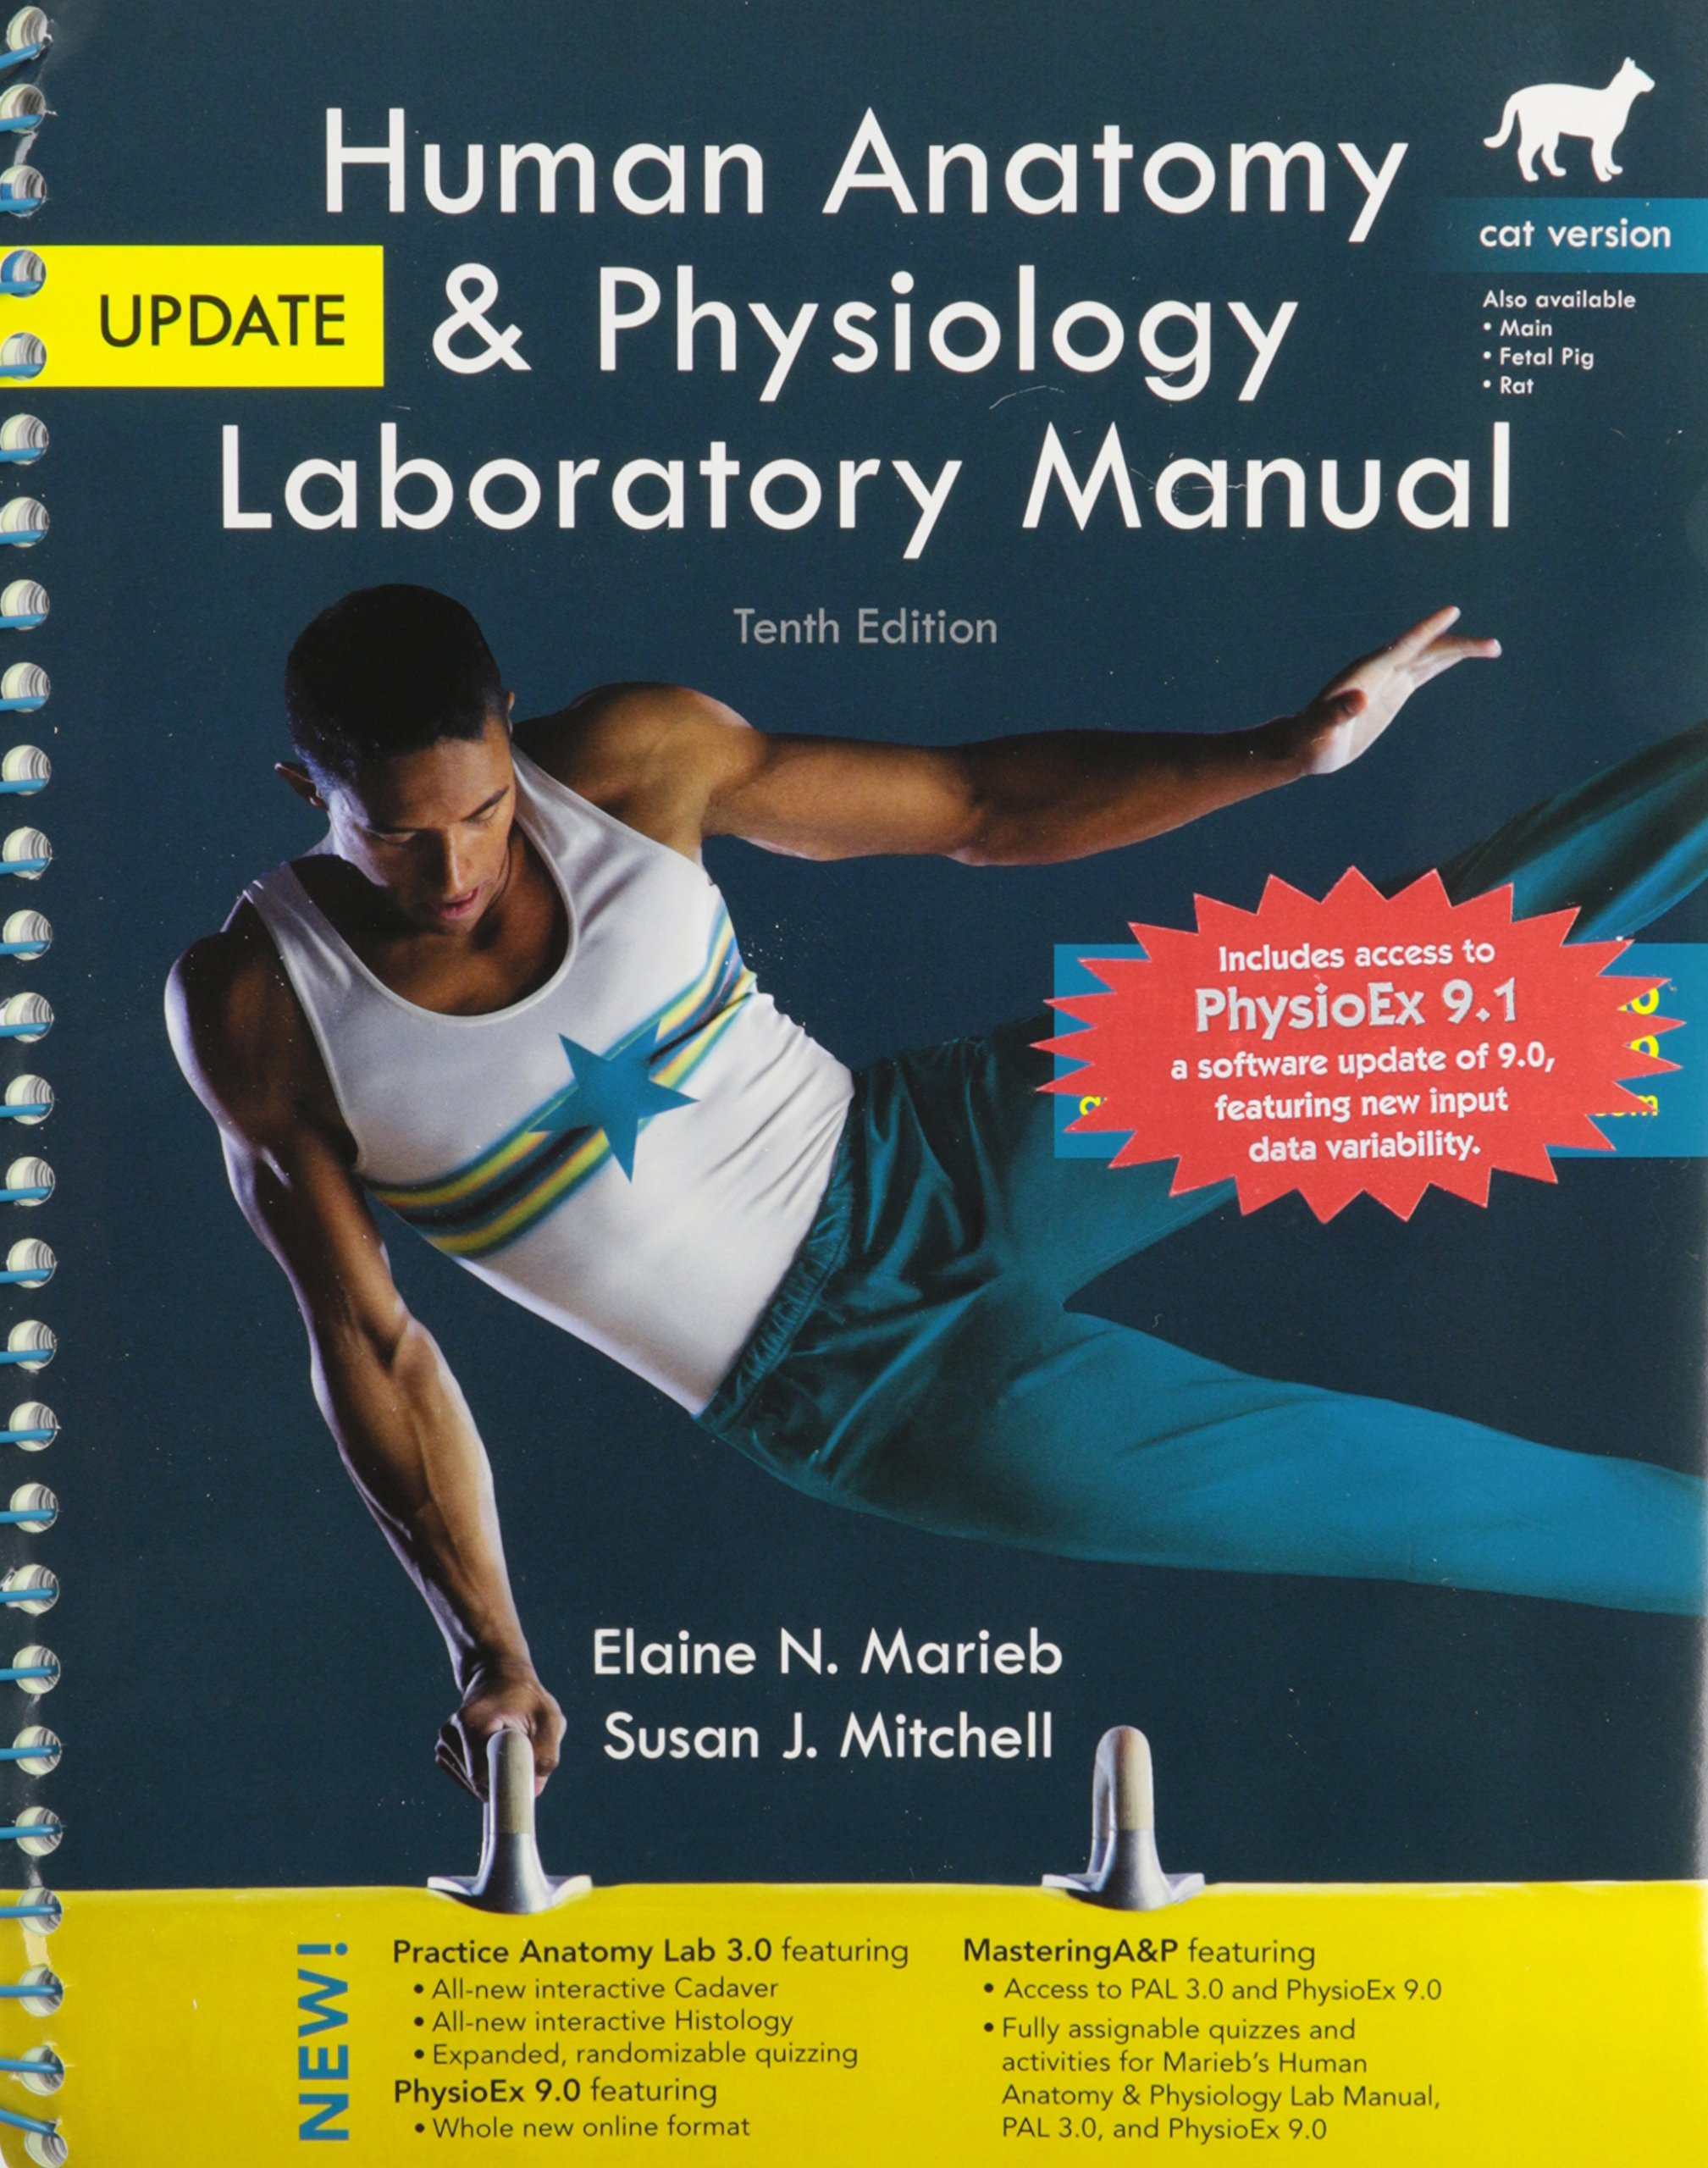 Buy Fundamentals of Anatomy & Physiology + MasteringA&P with Pearson eText  + Get Ready for A&P + Human Anatomy & Physiology Laboratory Manual, Cat .